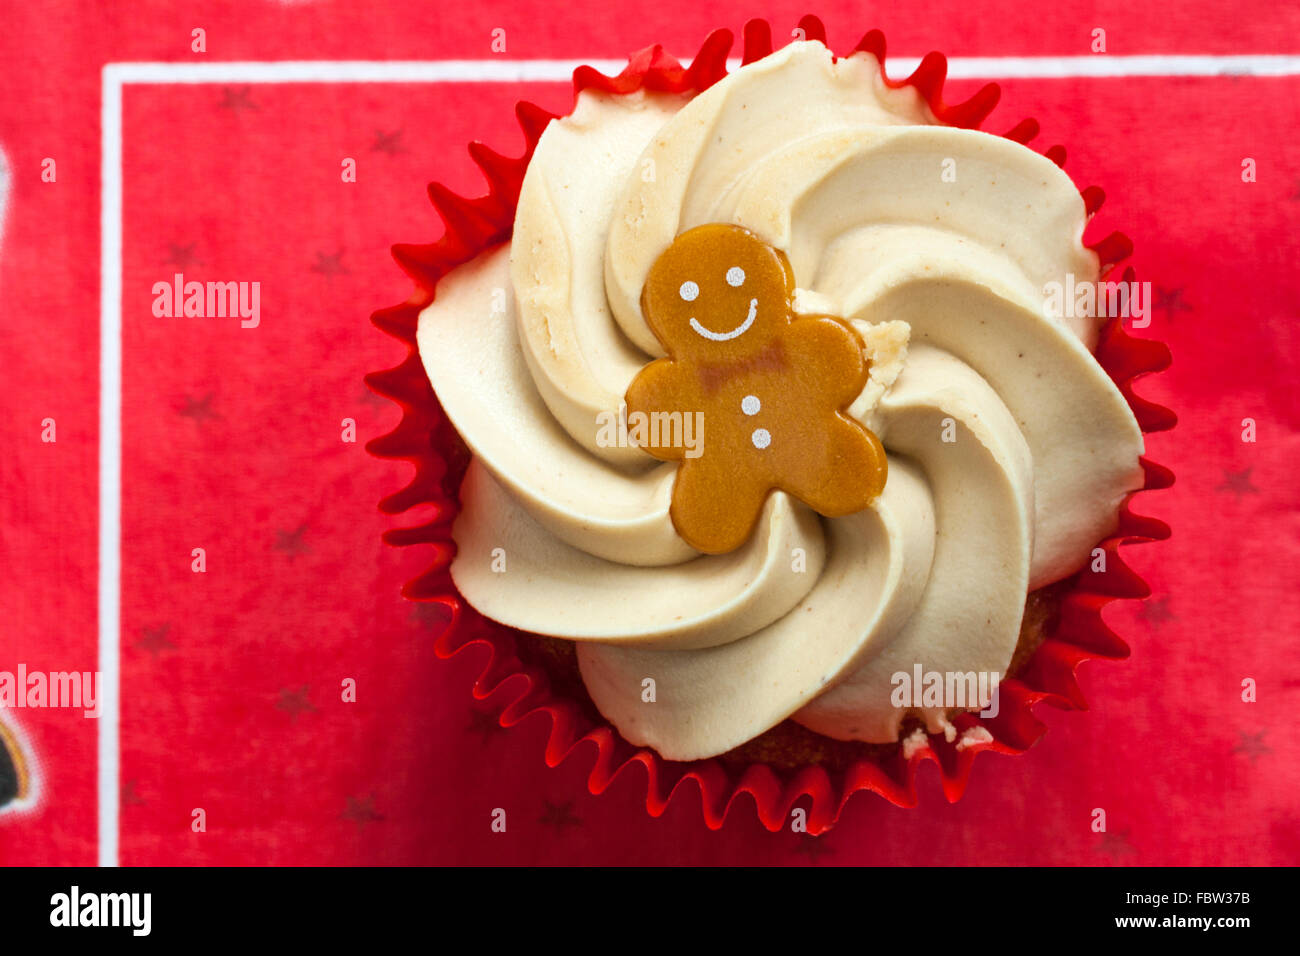 Tesco Gingerbread Cupcake On Red Serviette Stock Photo Alamy